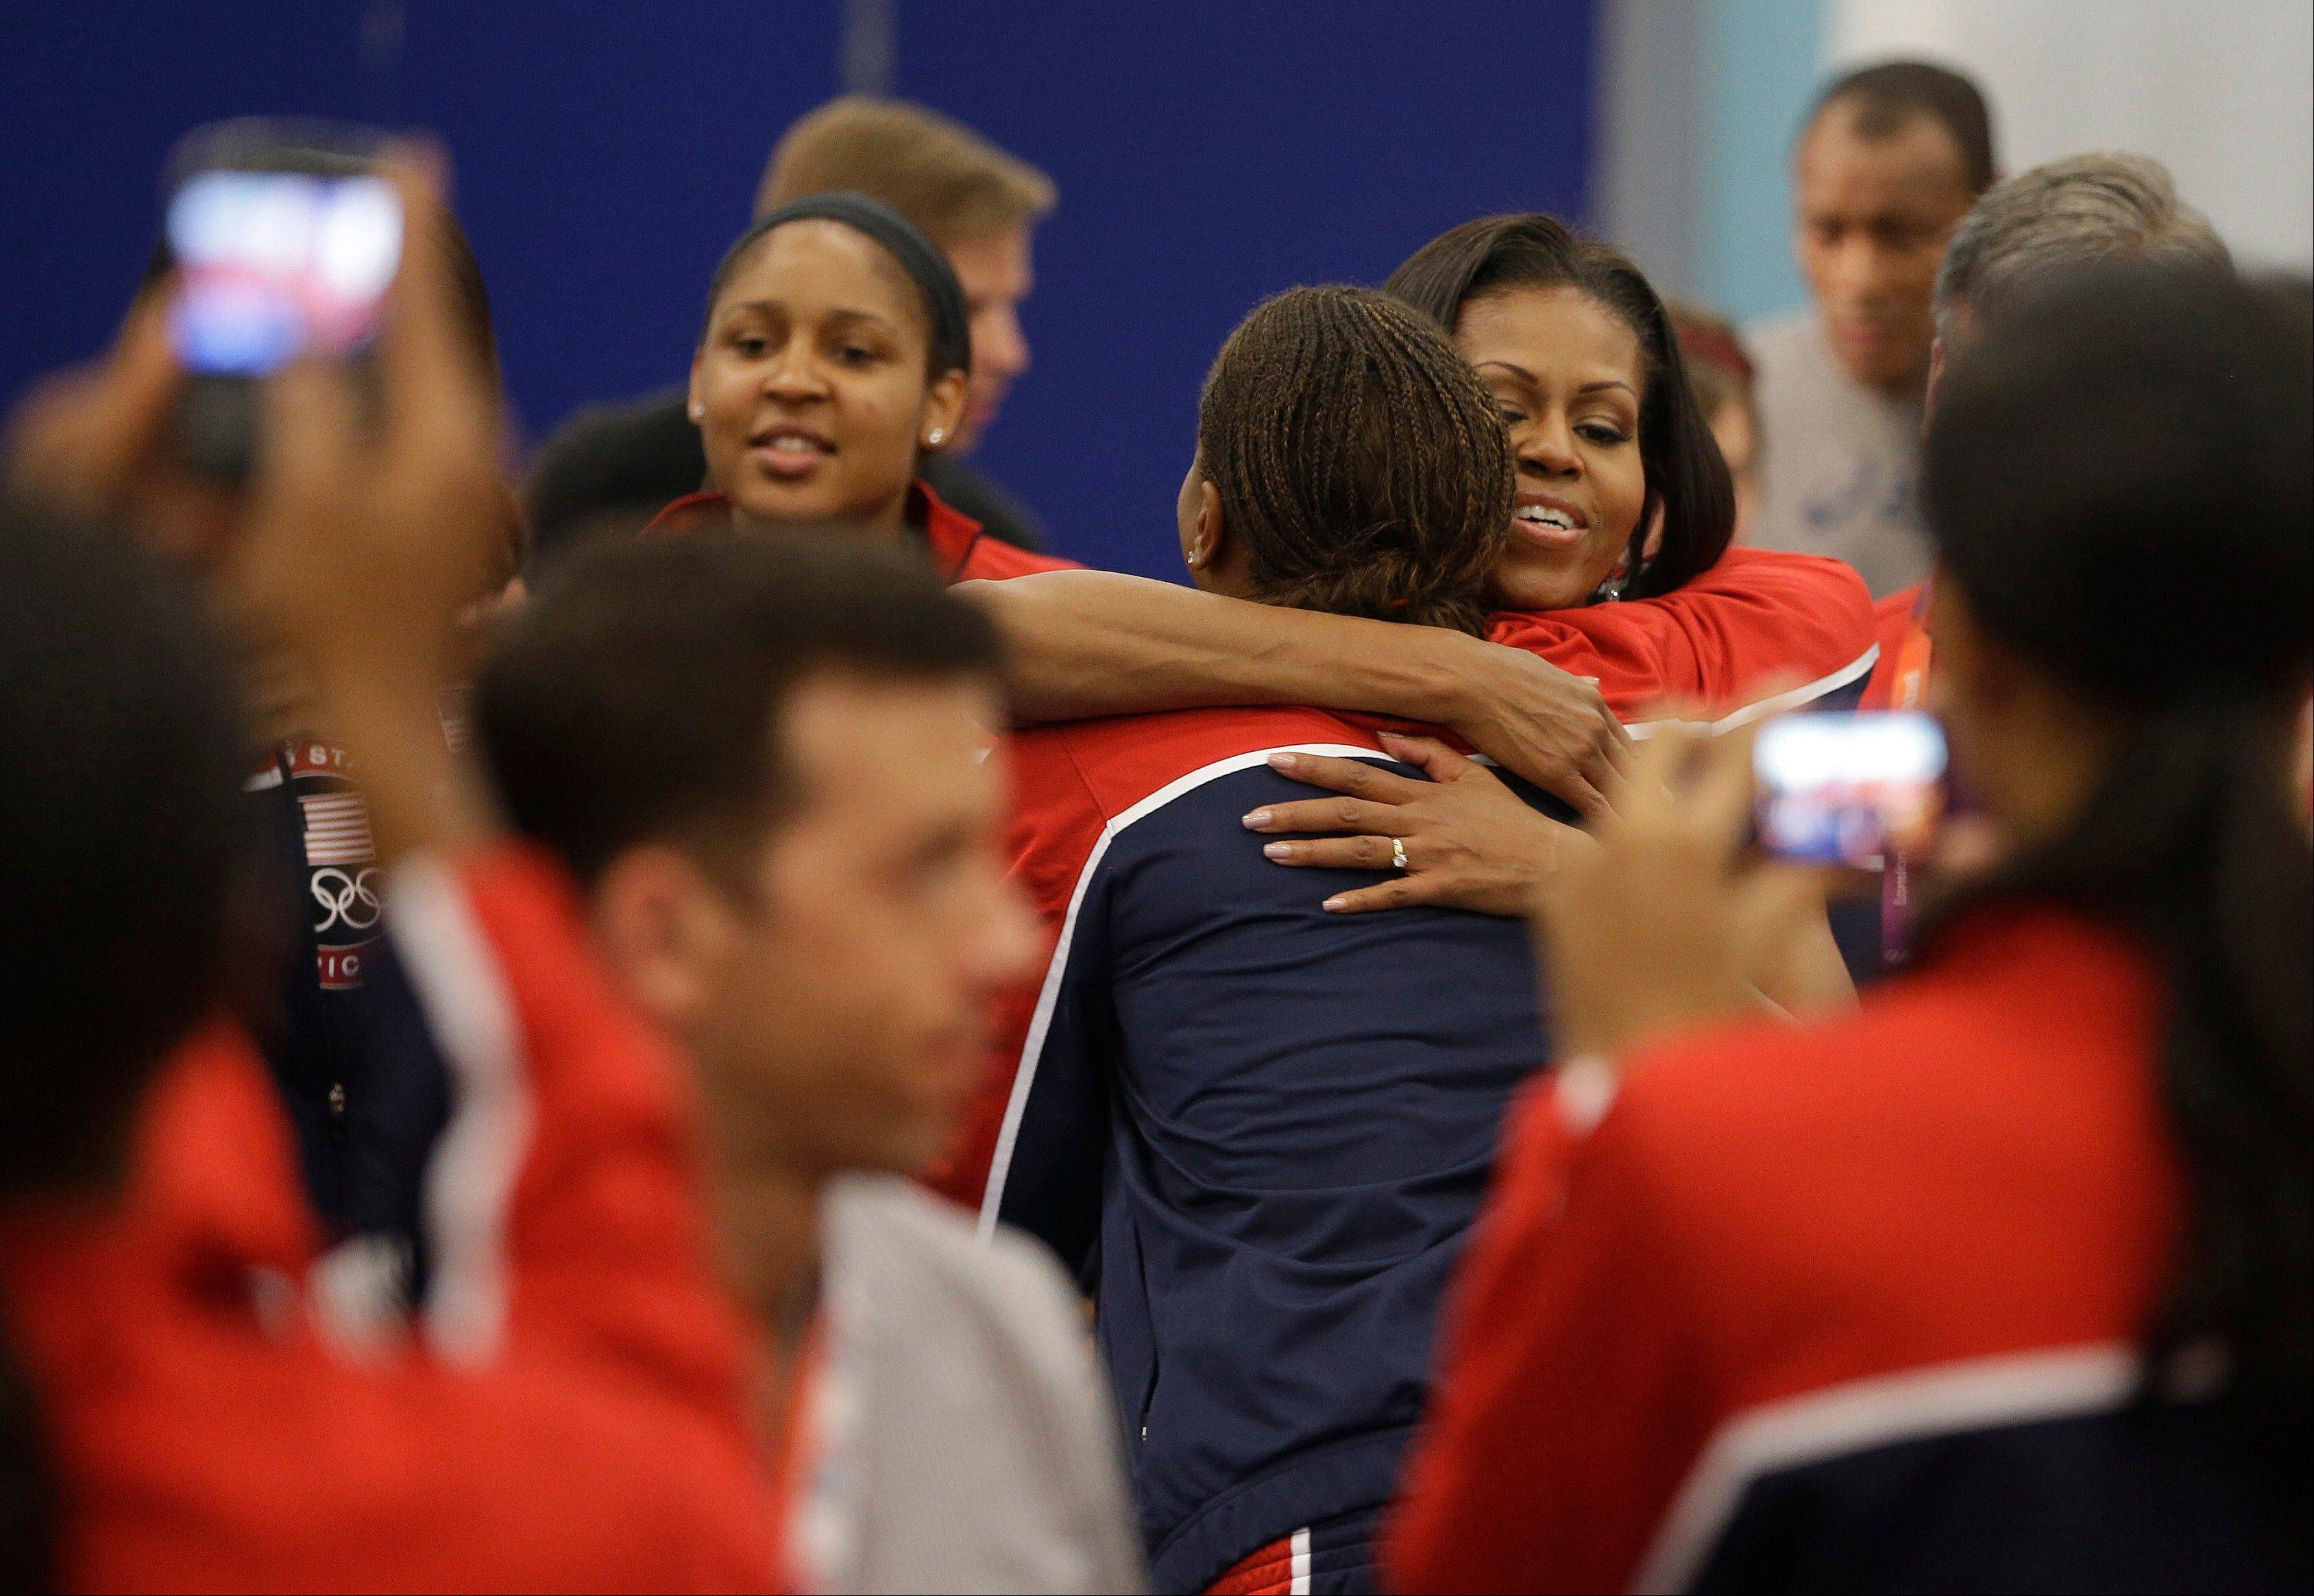 First lady Michelle Obama hugs basketball player Tamika Catchings after speaking during a breakfast Friday with Team USA at the 2012 Summer Olympics in London.